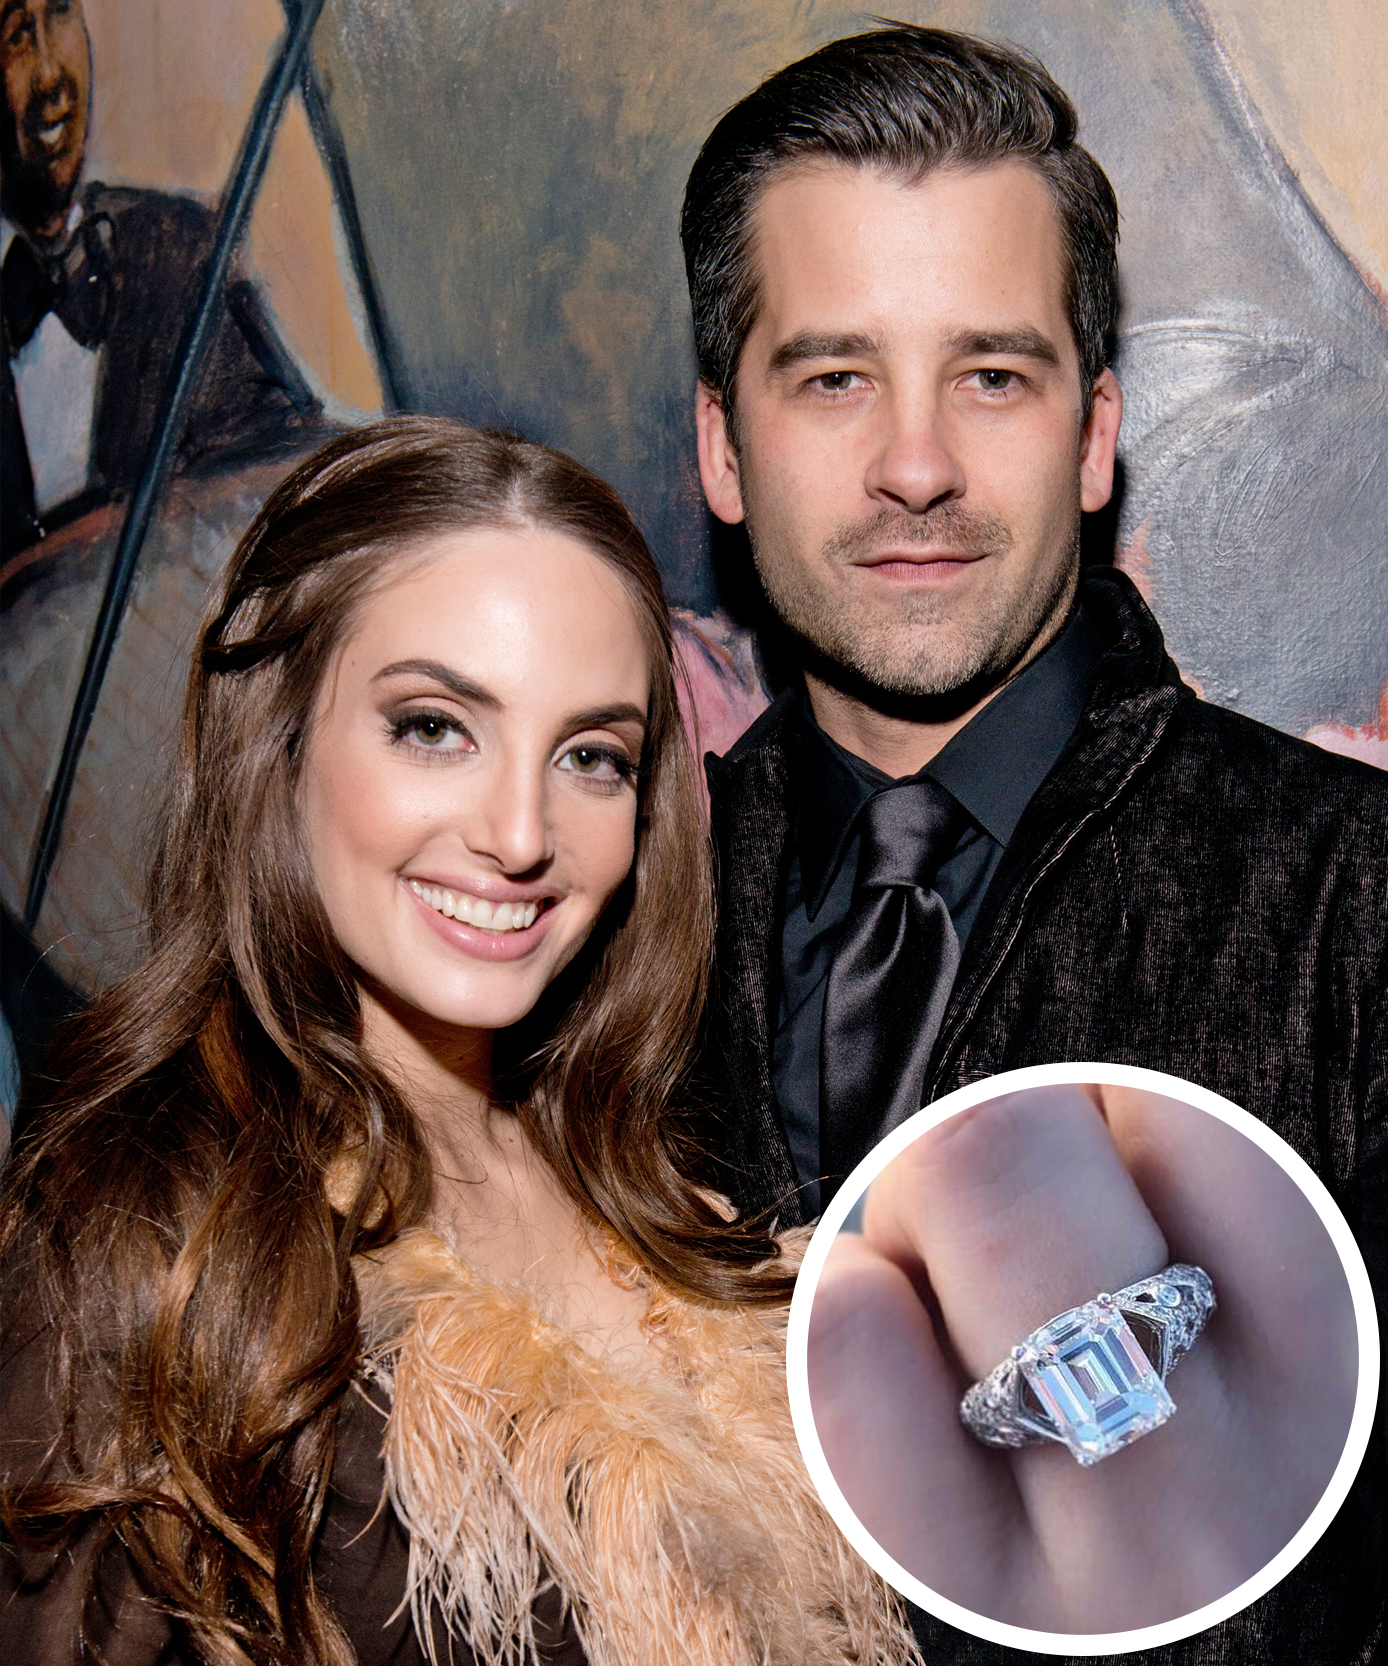 image who celebrity engagement expensive pinterest rings most